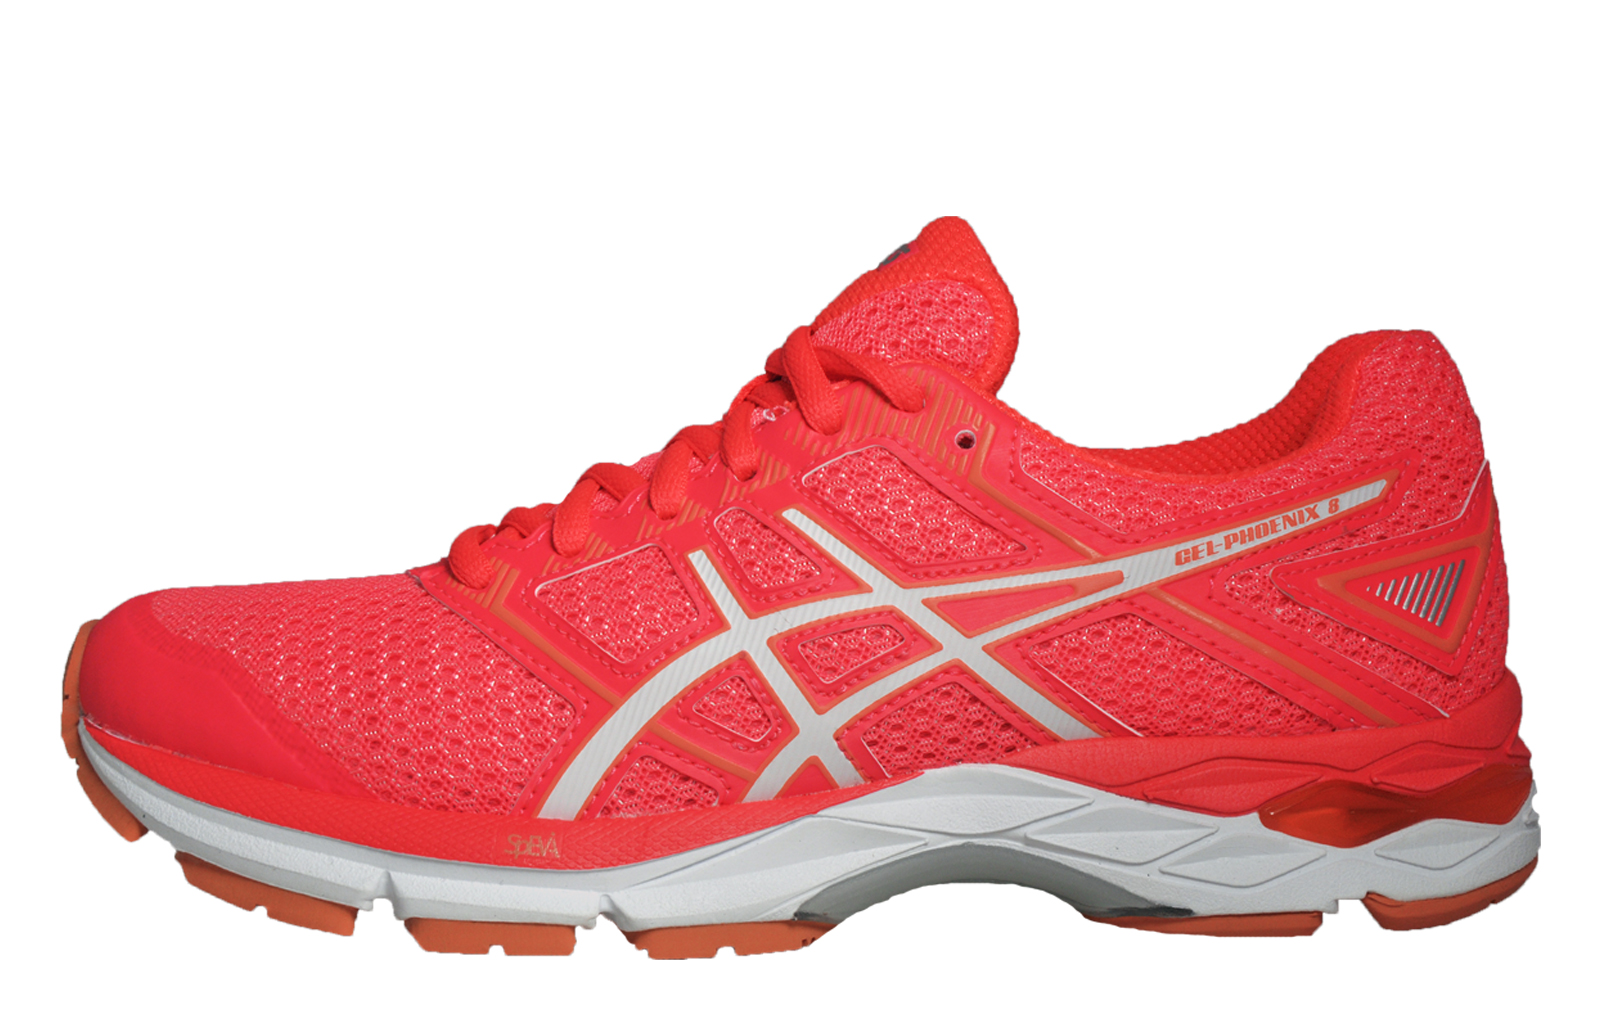 adfeab1daf Details about Asics Gel Phoenix 8 Womens Running Shoes Gym Fitness Trainers  Diva Pink